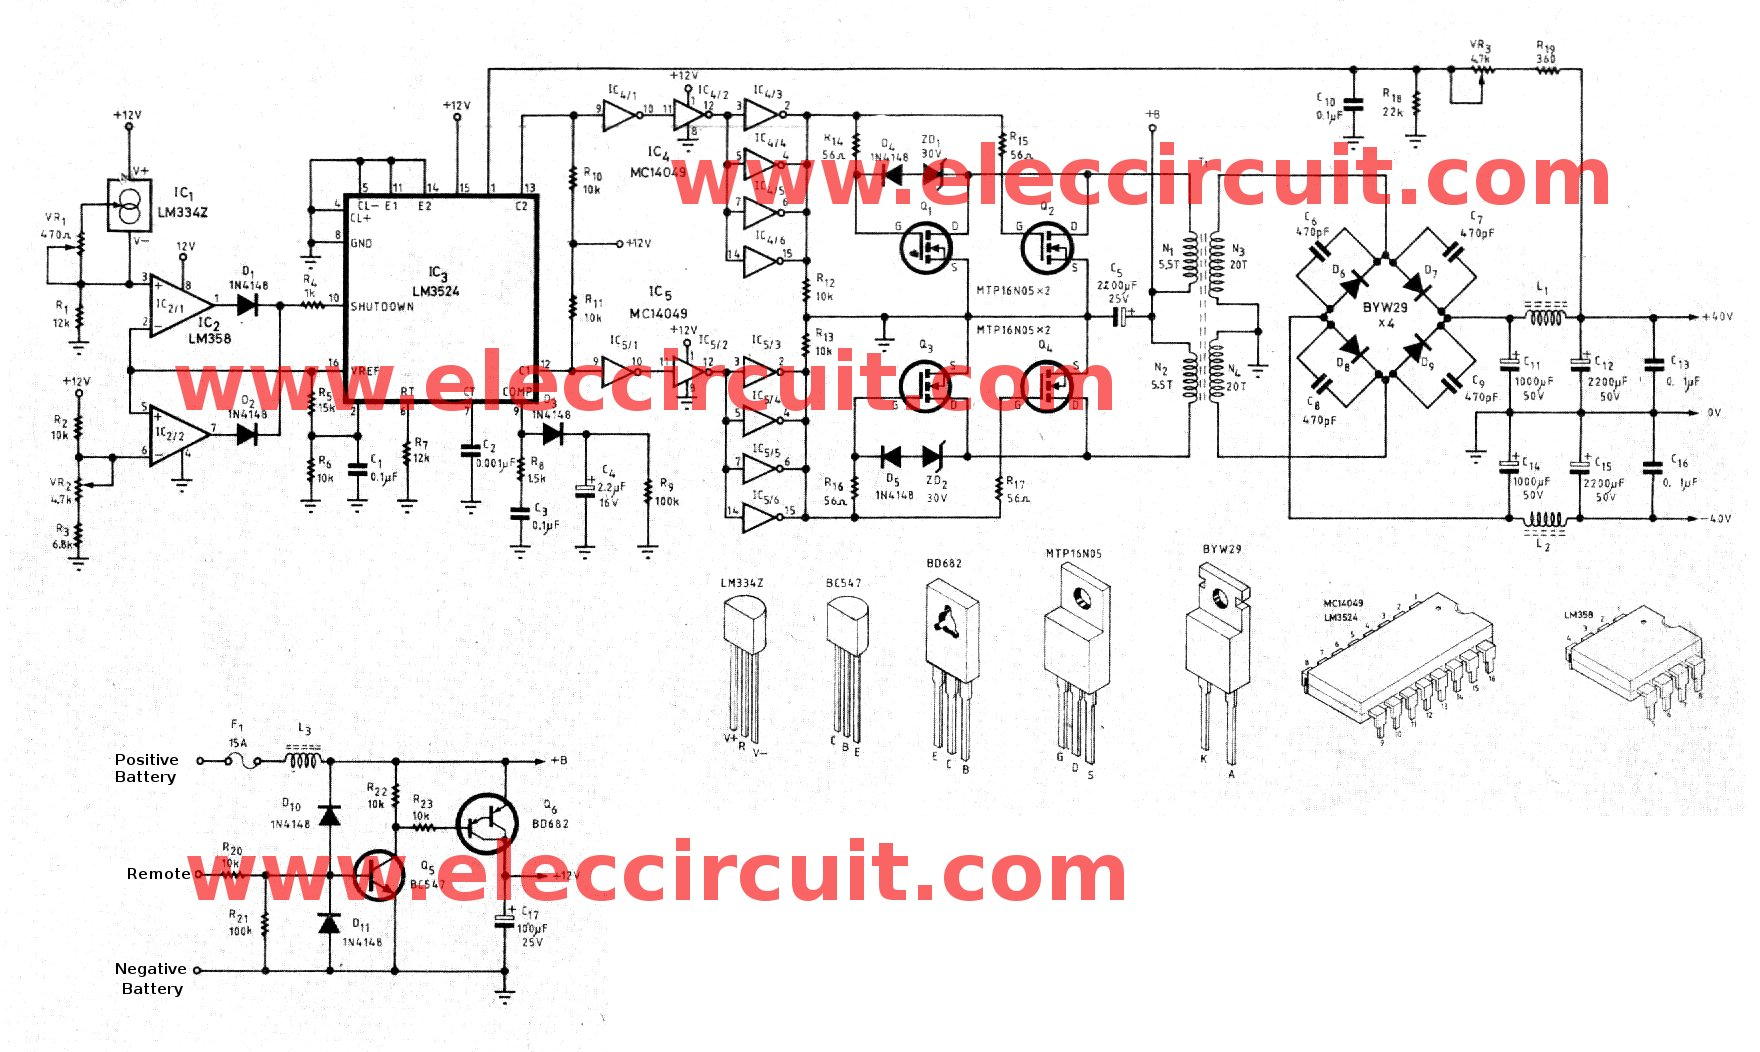 hight resolution of duda control convertidor reductor elevador foros de electr nica sg3524 circuits http circuitdiagramhqewnet sg3524regulating